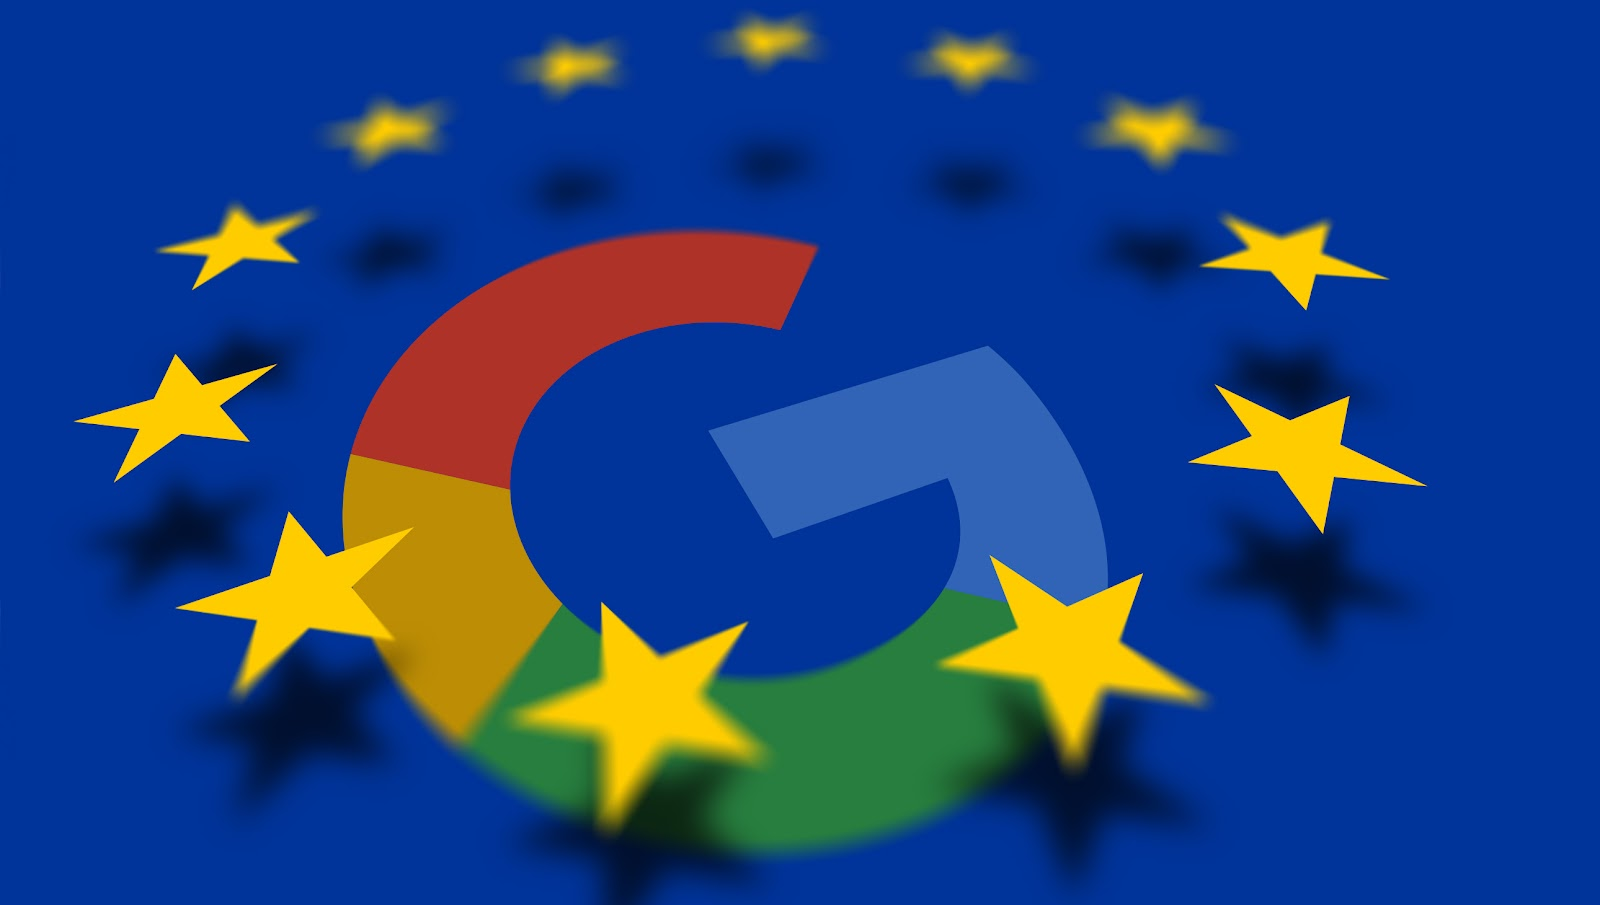 Google fined $2.7BN for EU antitrust violations over shopping searches |  TechCrunch